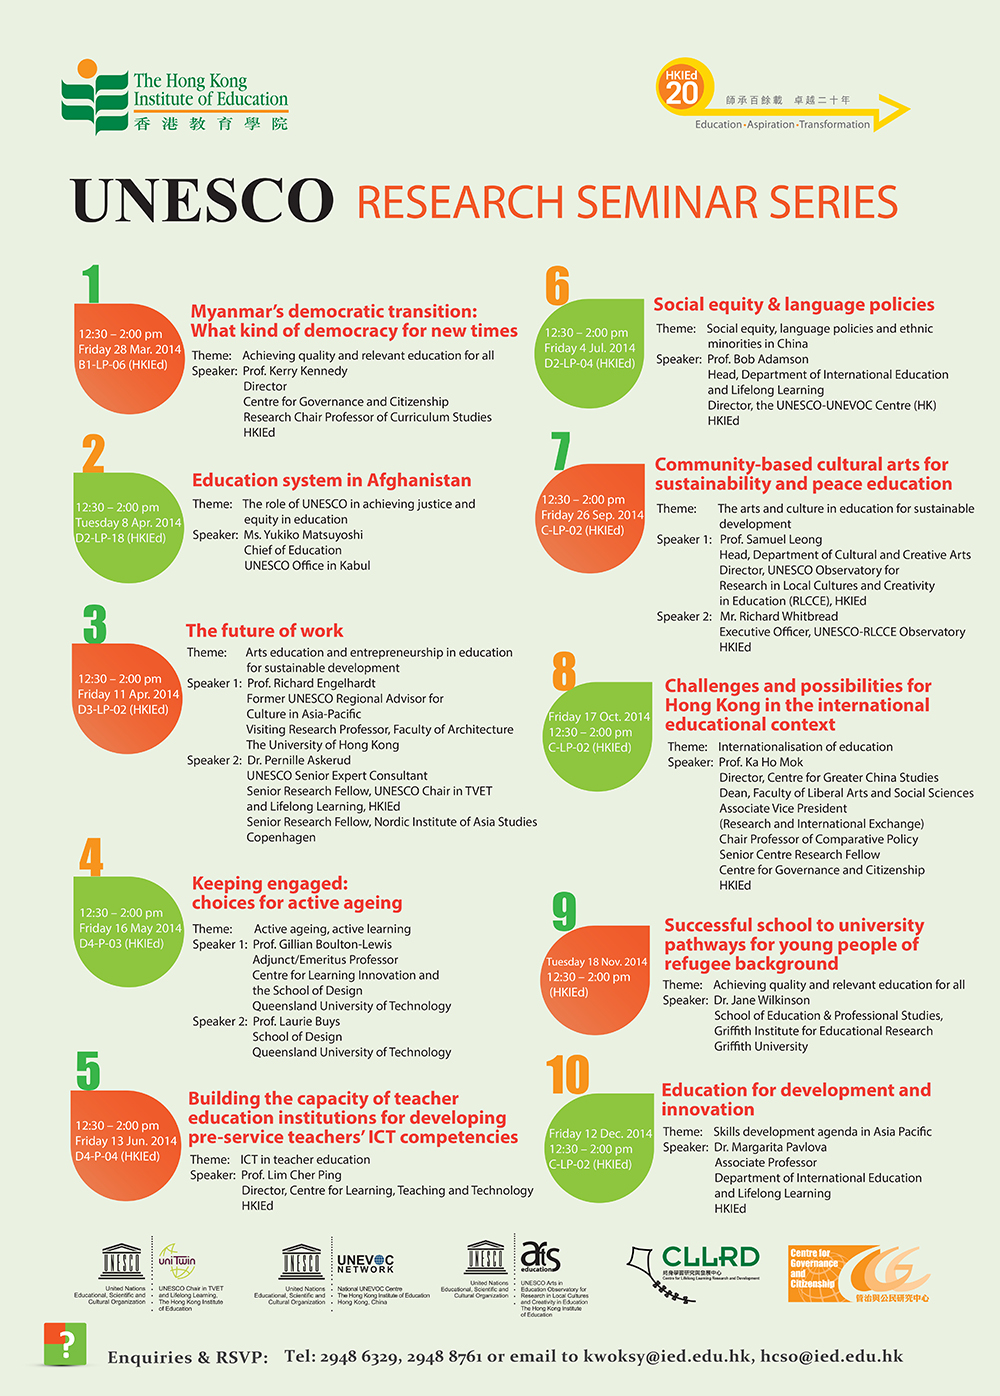 UNESCO Research Seminars series: Education for development and innovation